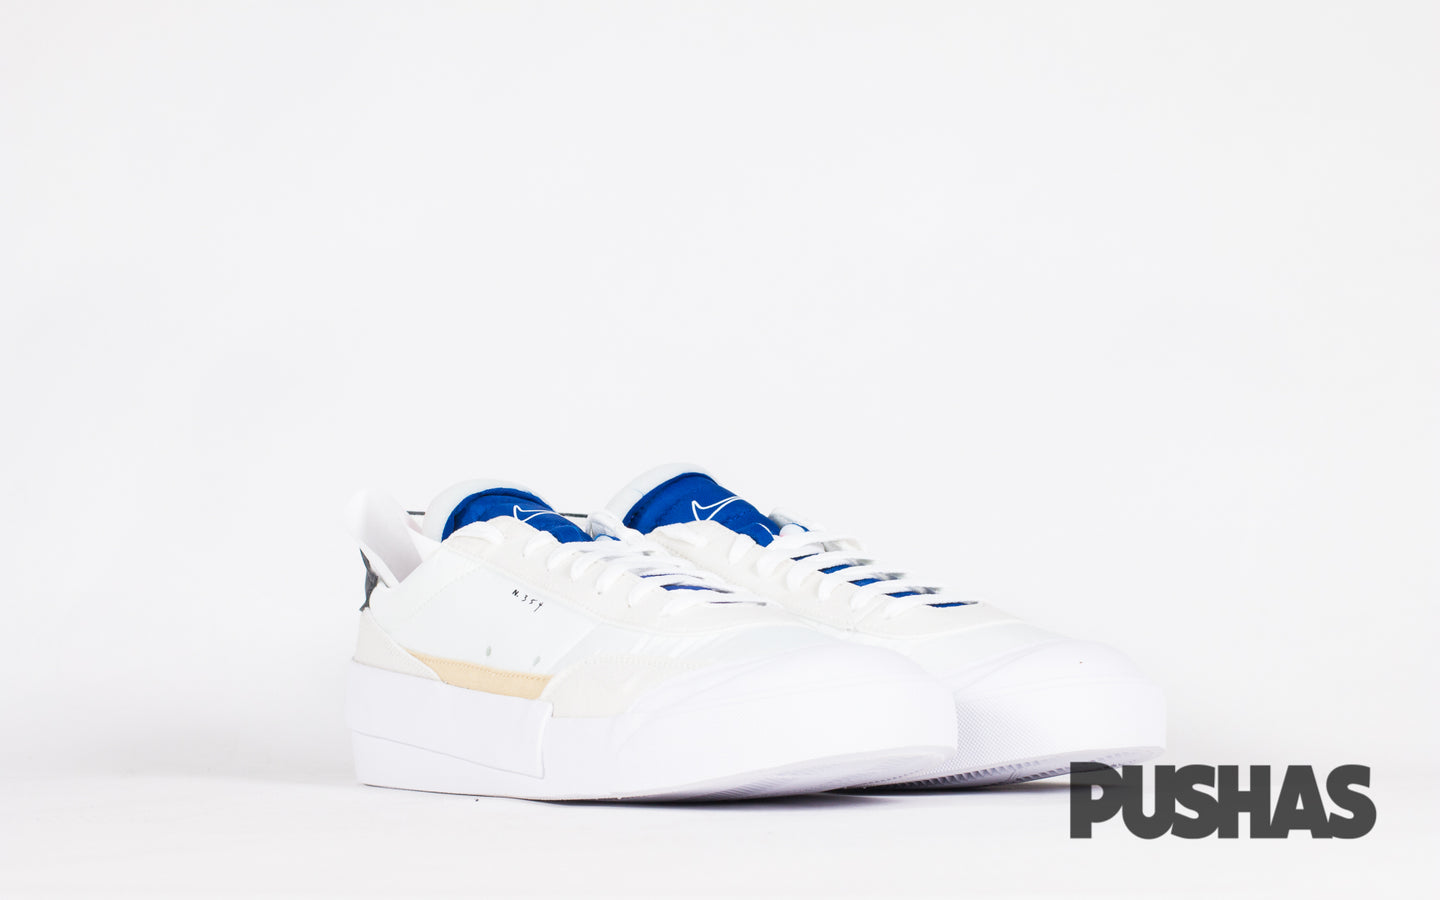 pushas-nike-Drop-Type-LX-Summit-White